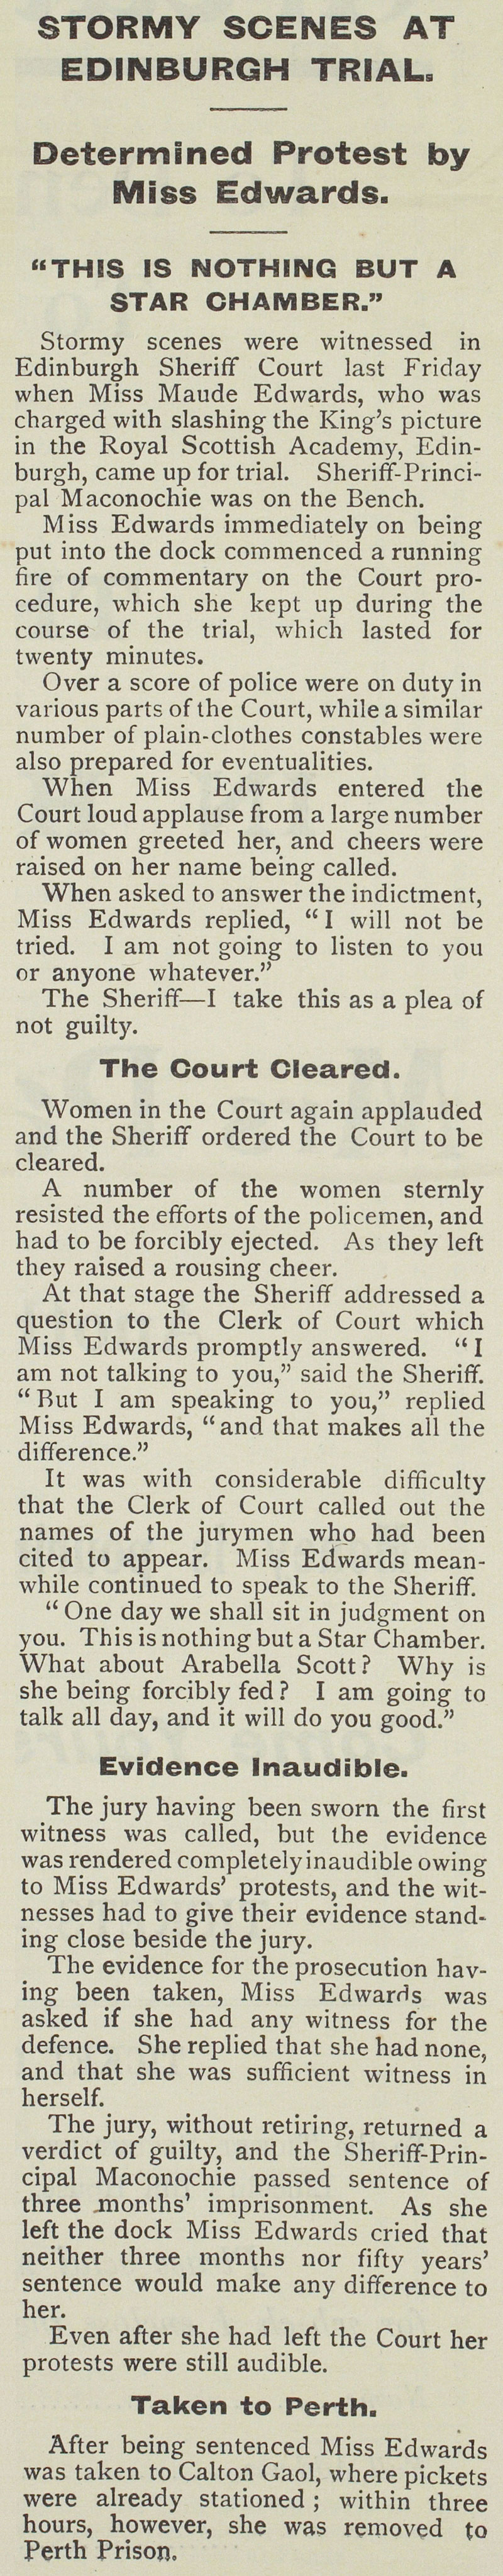 Newspaper report of Maude Edward's trial in Edinburgh, 1914